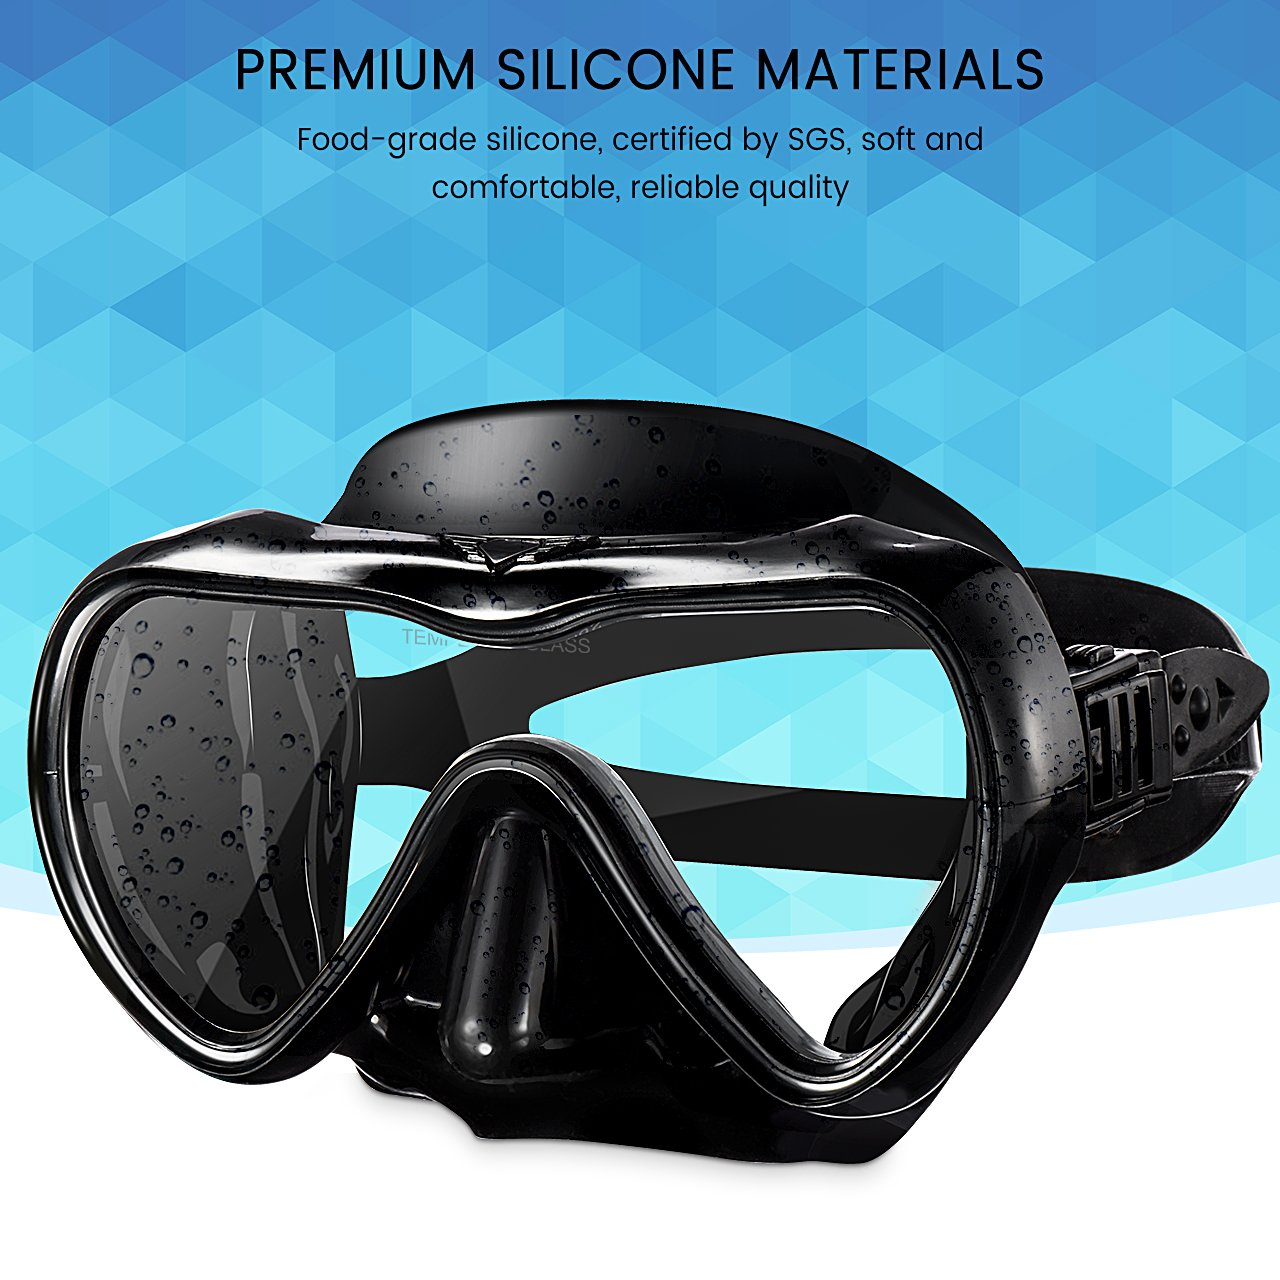 Soft Adjustable Strap Head for Swimming Soft Silicone Perfectly Fits The Face Blue Snorkeling Snorkeling Diving Scuba Snorkeling Mask with Anti-Fog Tempered Glass Lens Mpow Adult Diving Mask